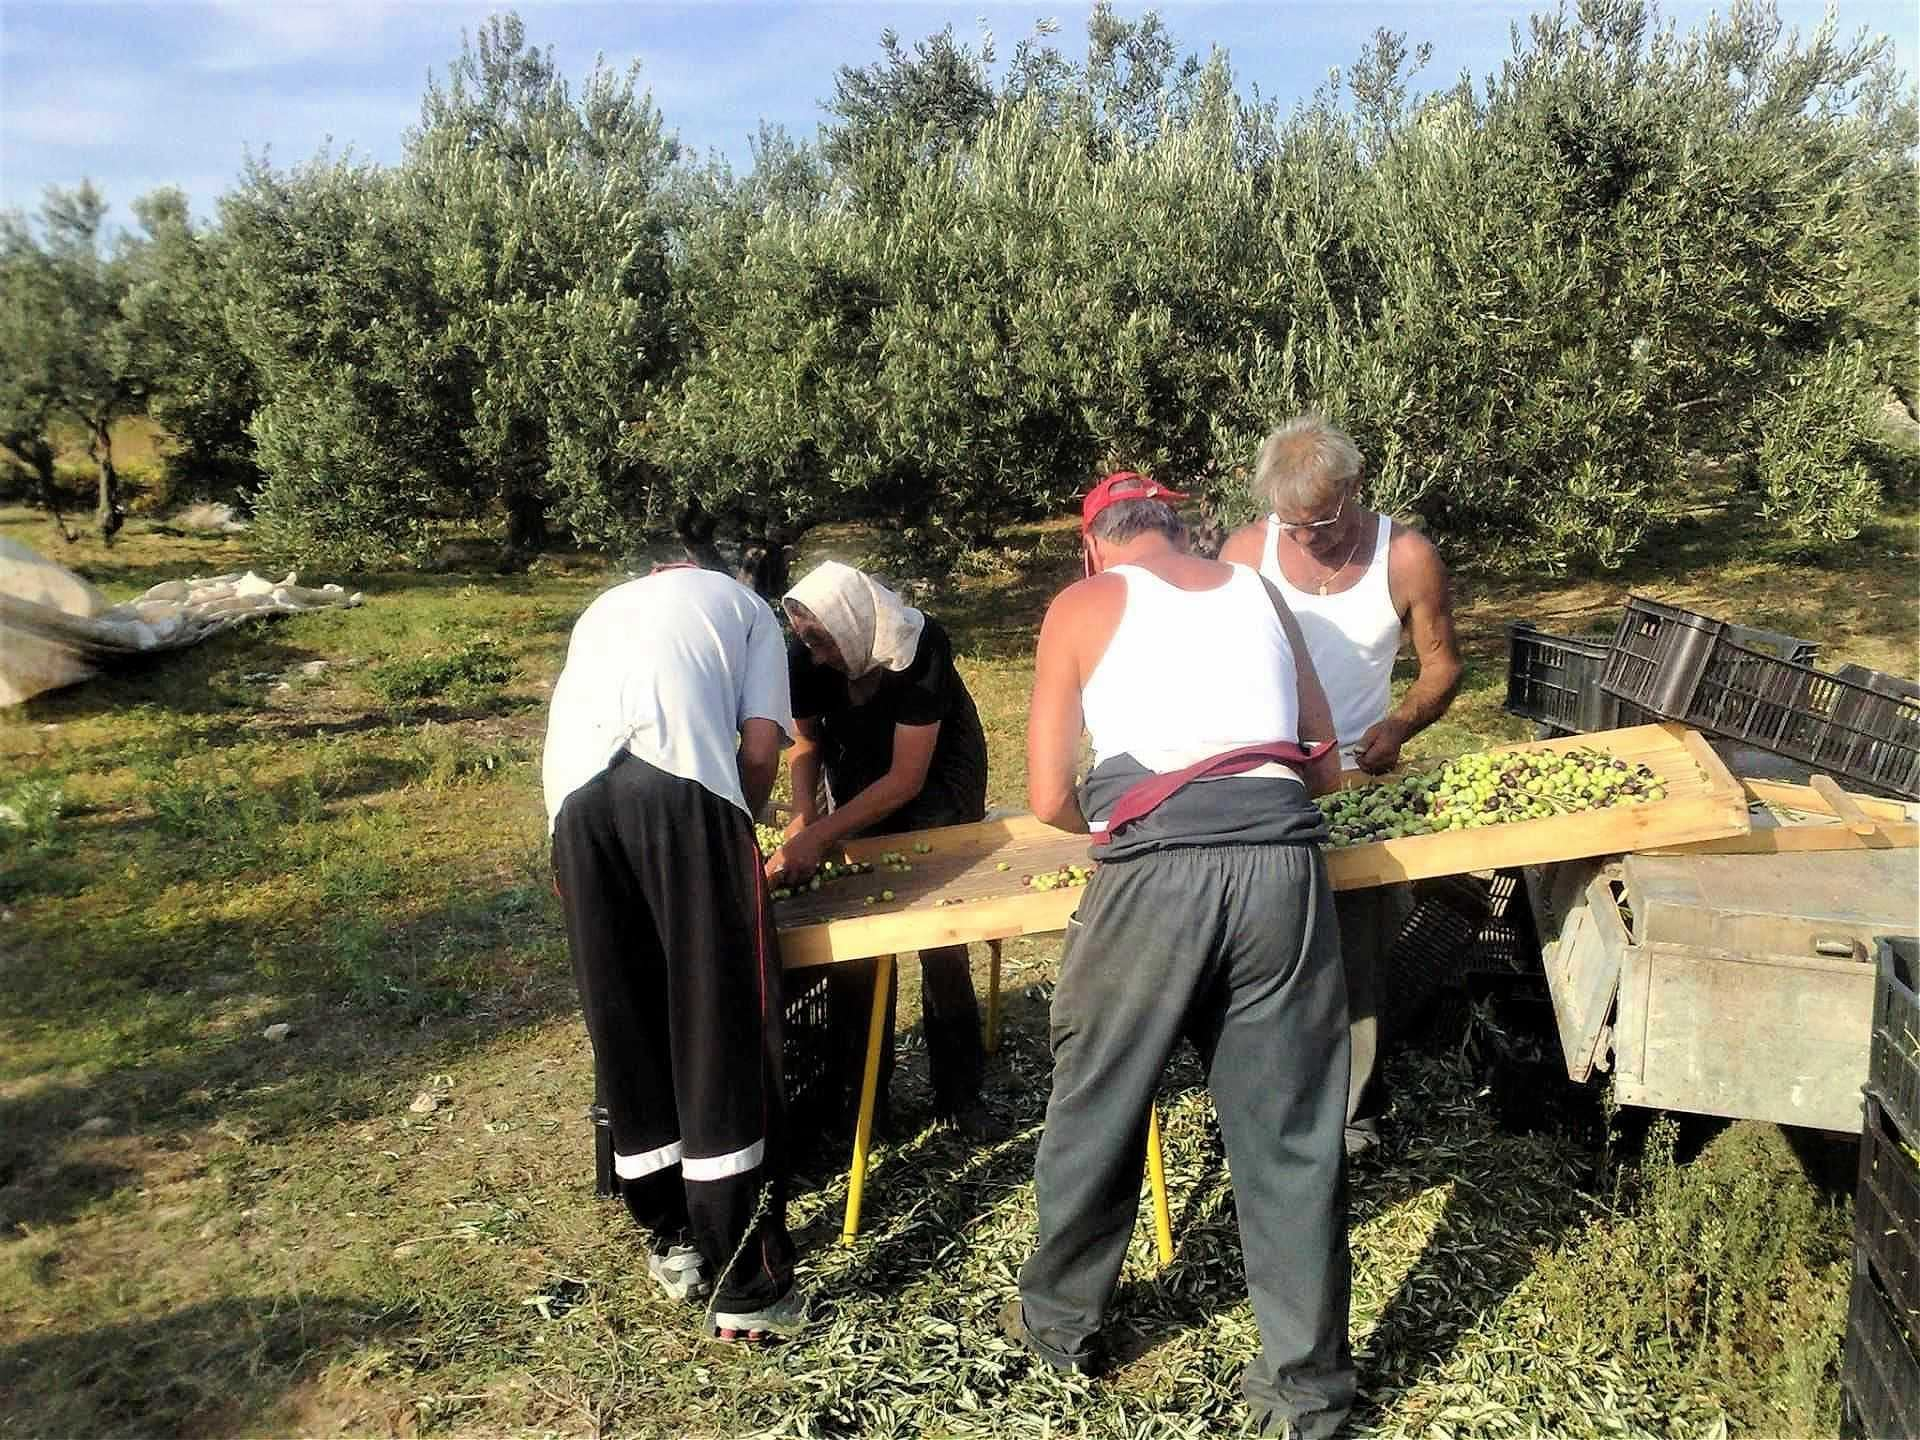 europe-competitions-profiles-production-the-best-olive-oils-world-the-farmer-behind-the-dramatic-rise-of-dalmatian-olive-oils-on-the-world-stage-olive-oil-times